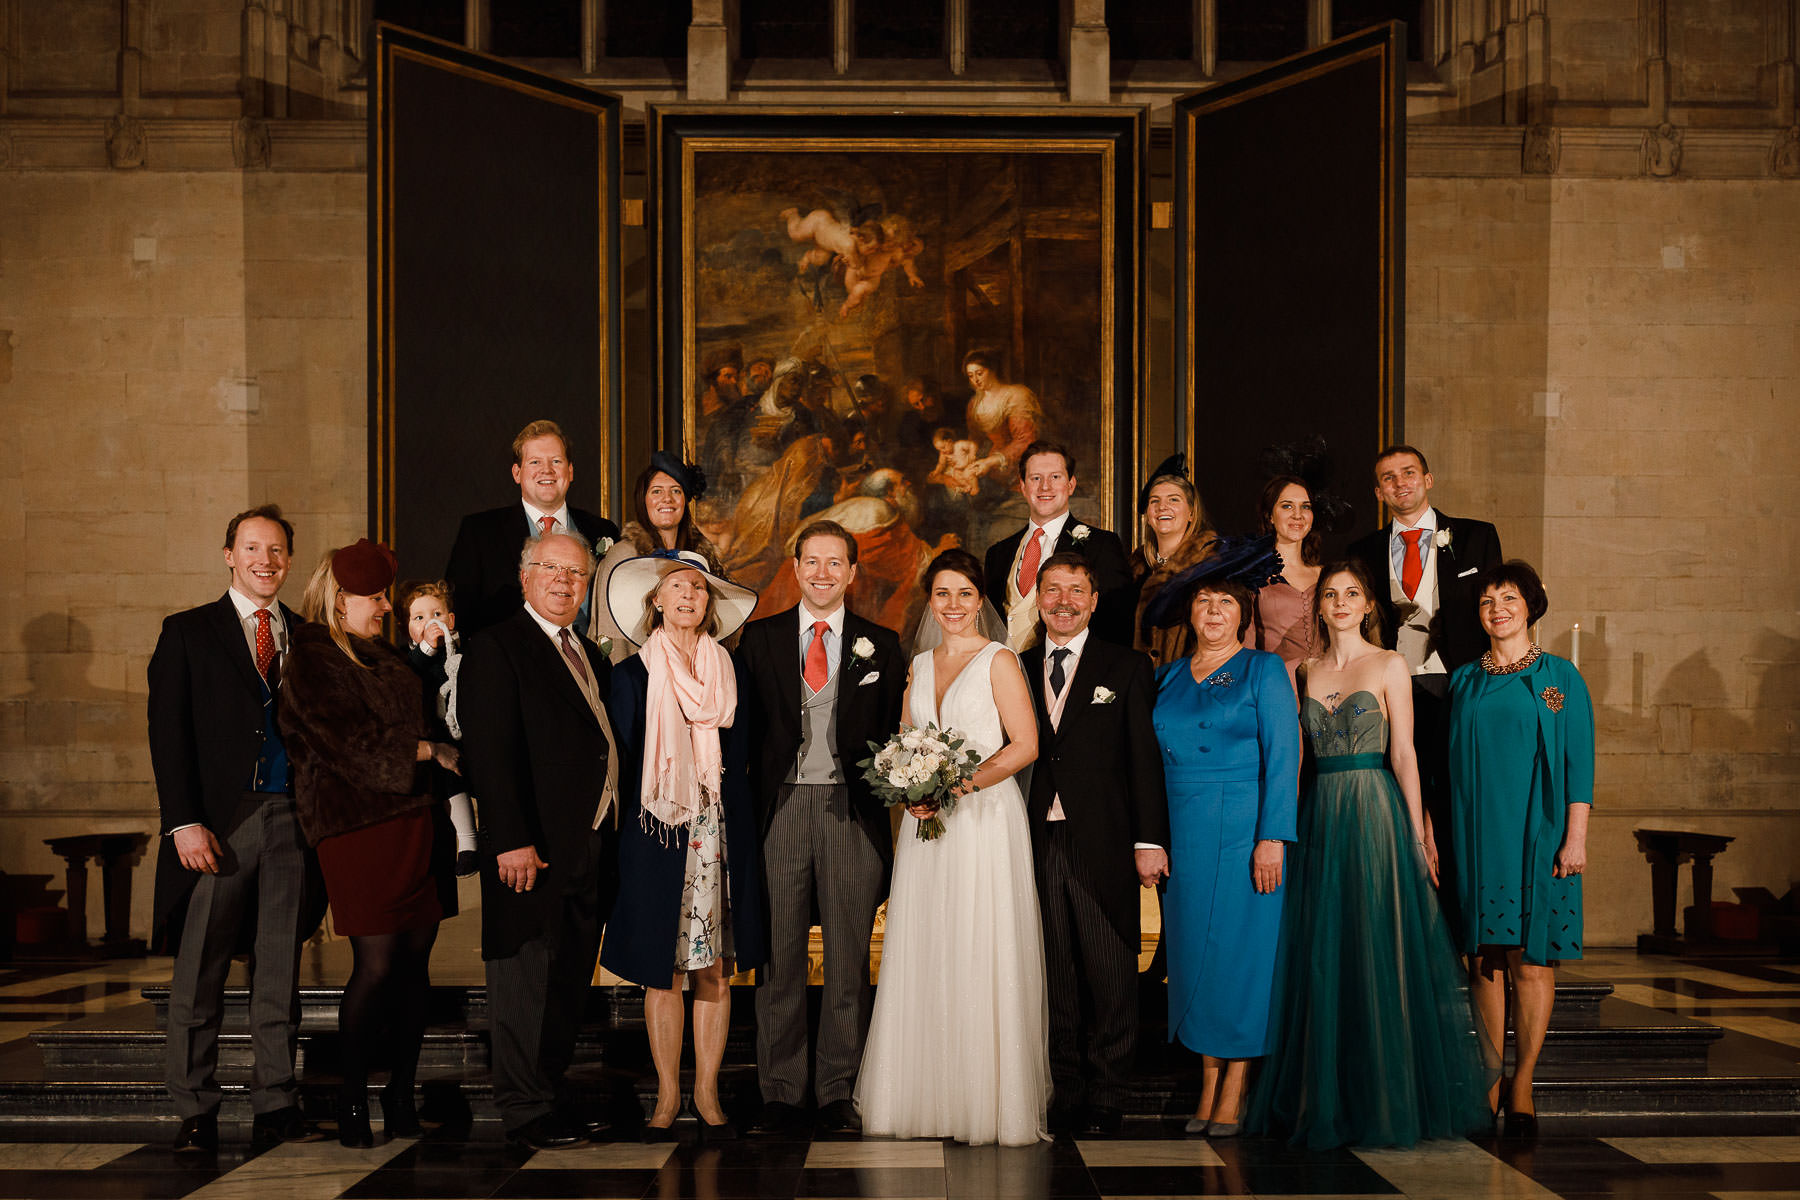 Kings Collage Cambridge Wedding Photographer